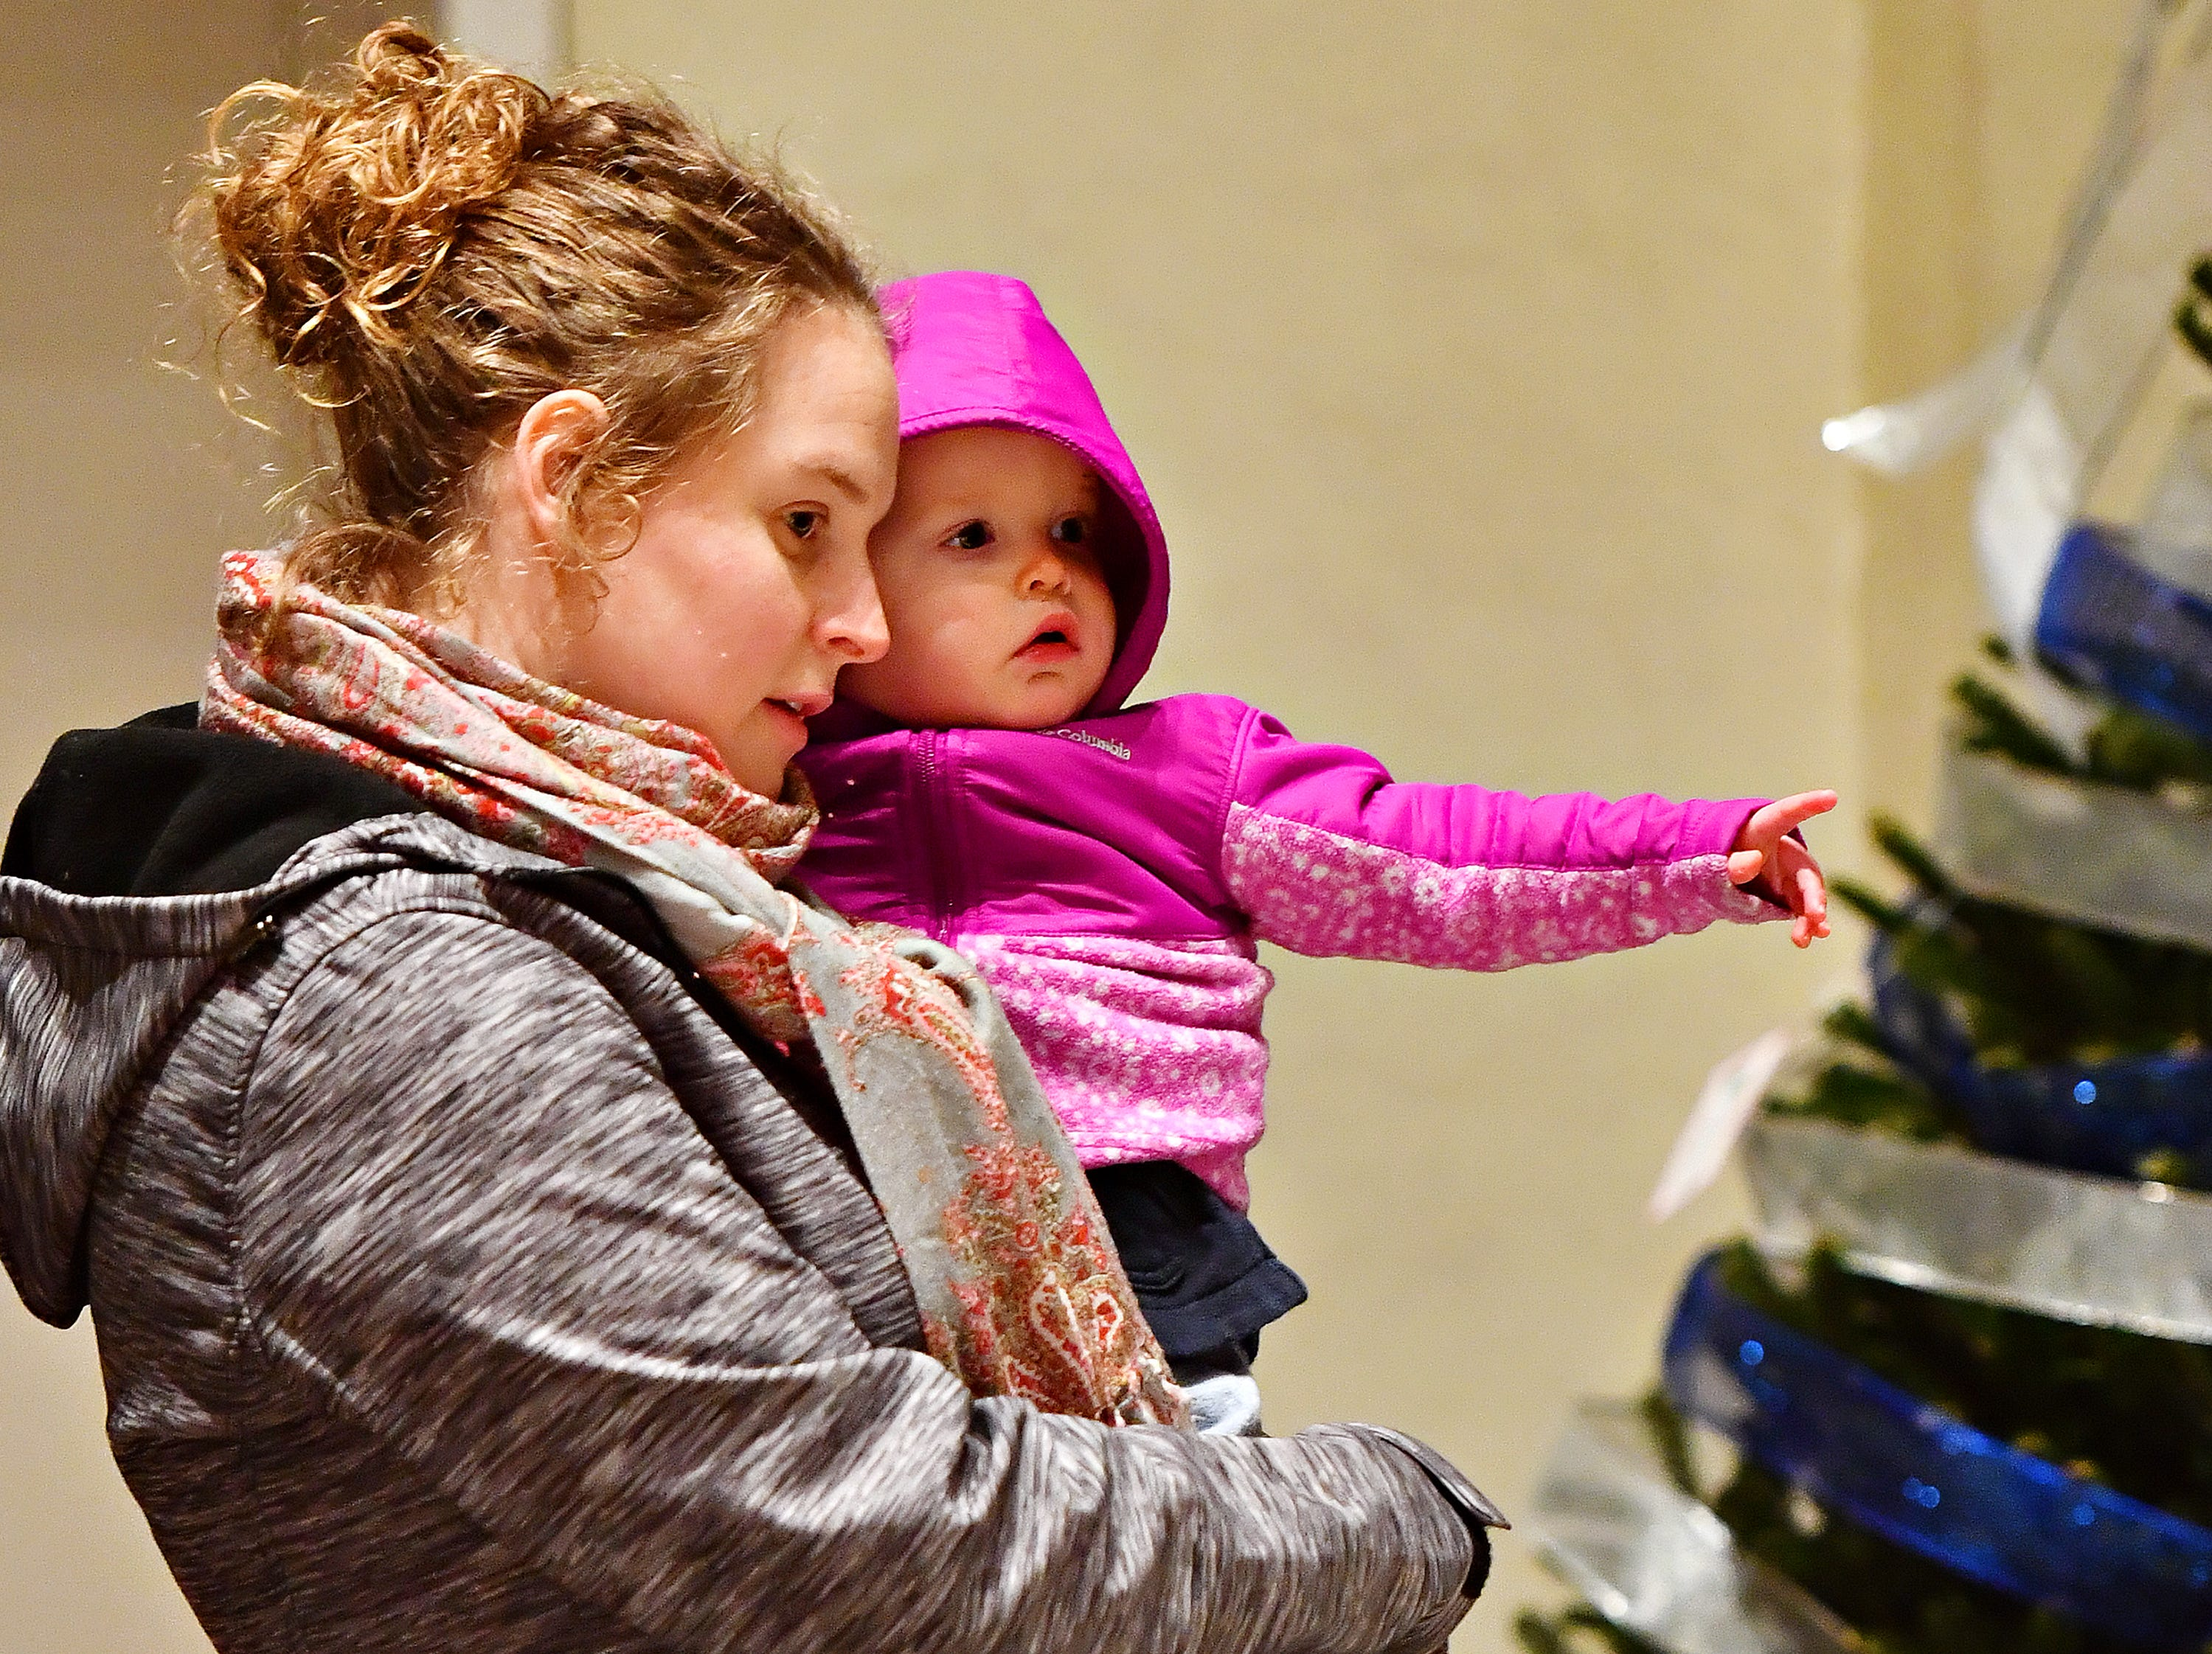 Kate Grady, of York City, holds her 17-month-old daughter Nora Grady as they watch musician Ian Carroll as he performs during Light Up York in York City, Saturday, Dec. 1, 2018. Dawn J. Sagert photo